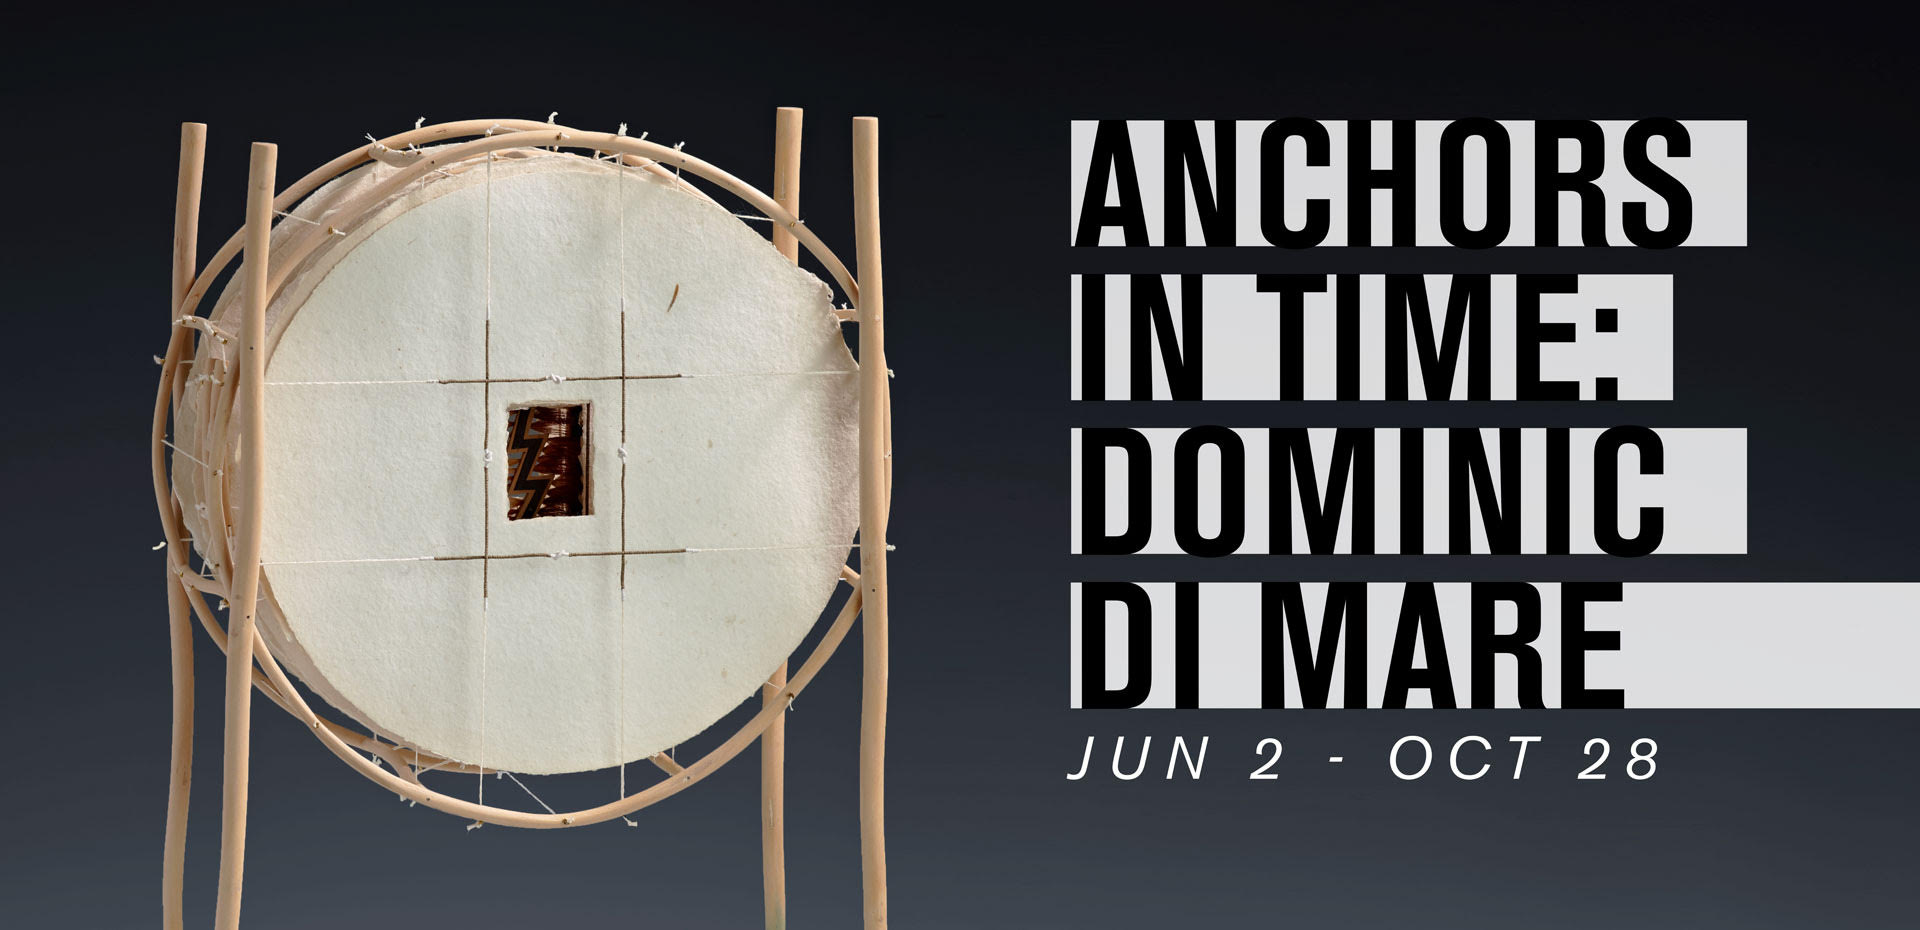 Dominic Di Mare exhibition at Museum of Craft and Design